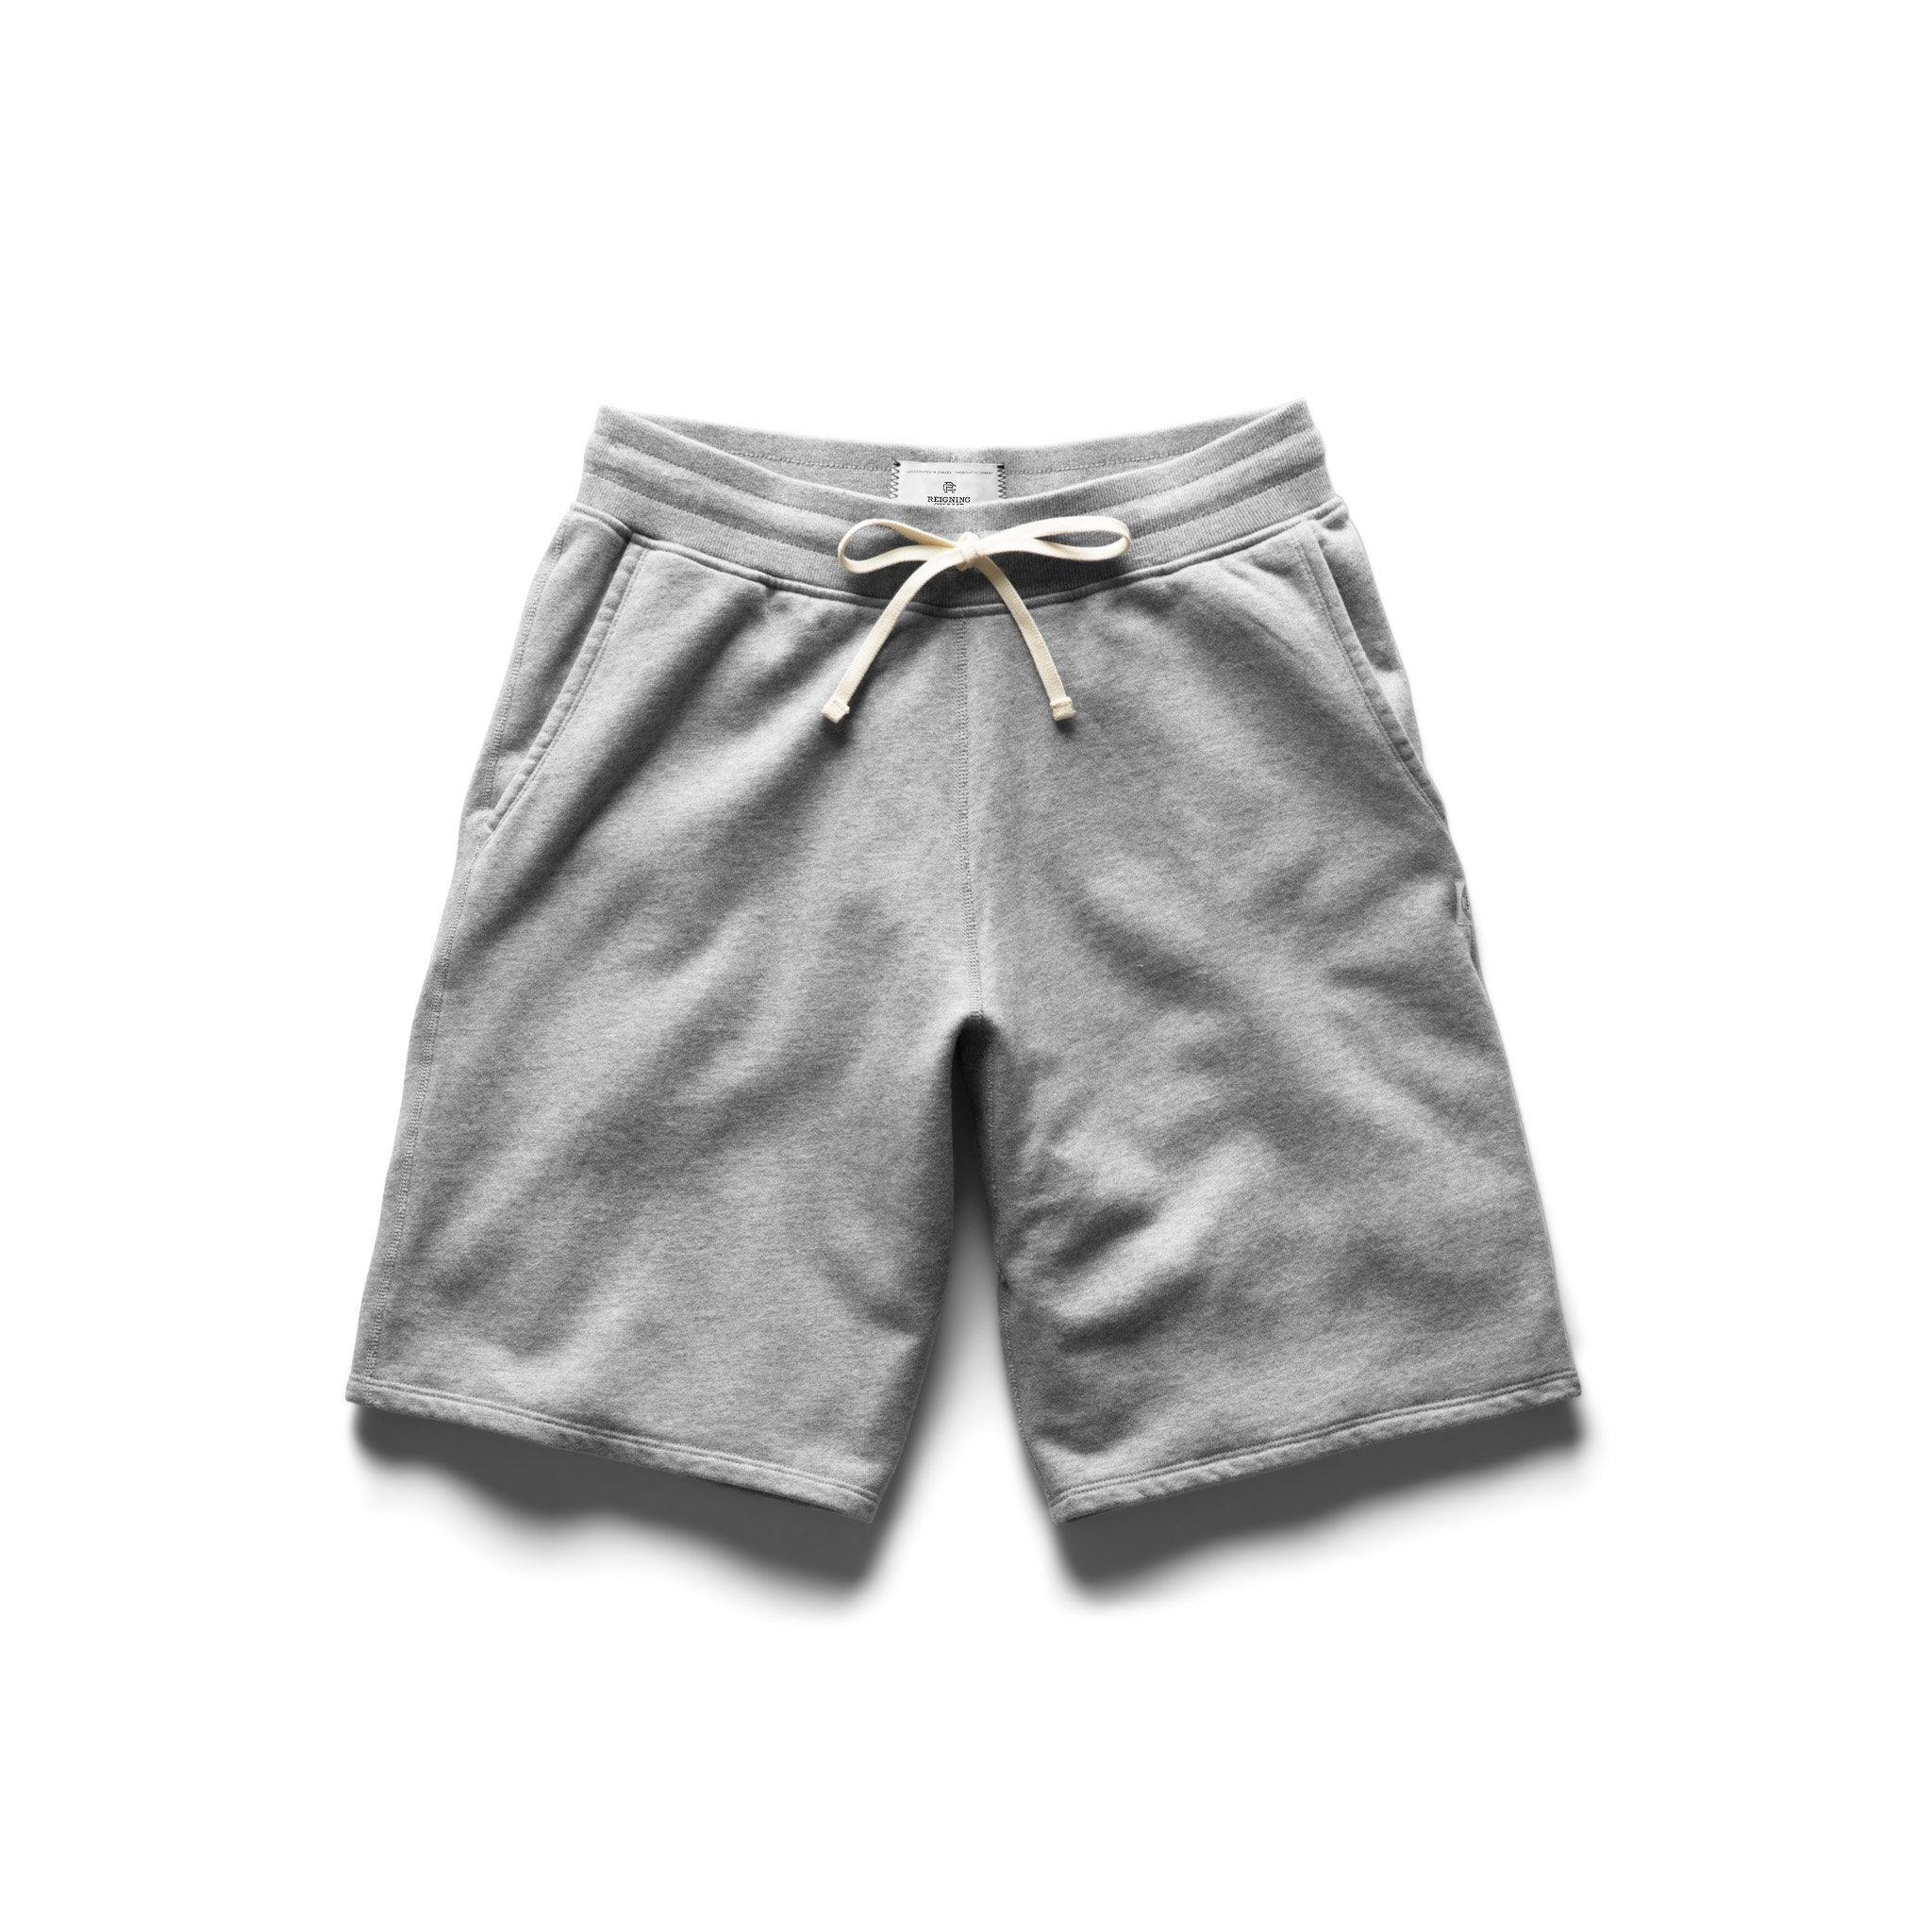 REIGNING CHAMP M'S SHORTS MID WEIGHT SWEATSHORT